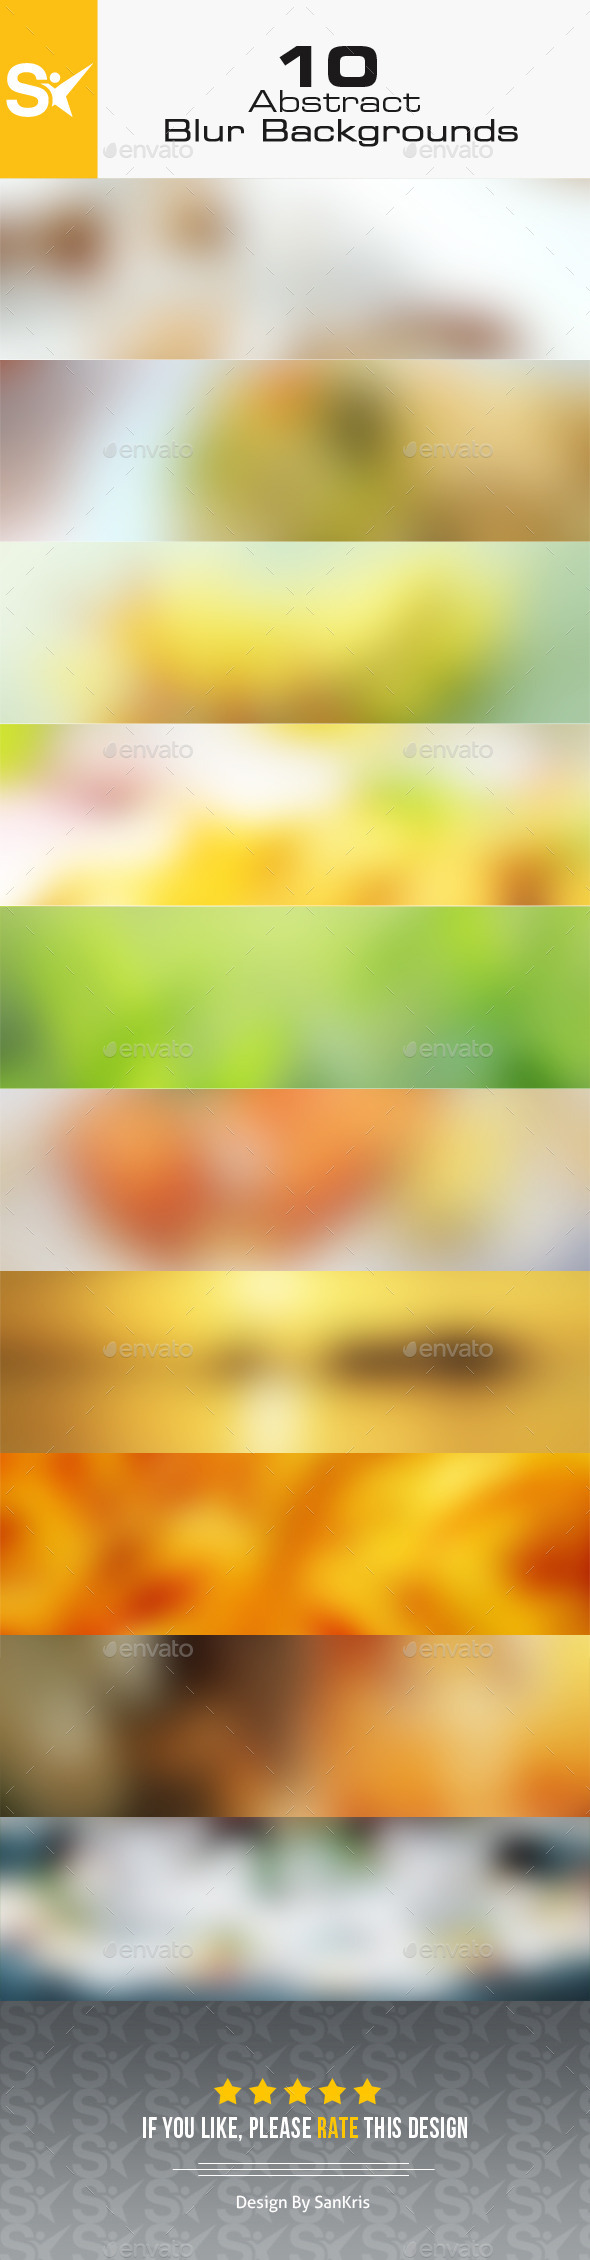 10 Blur Backgrounds Vol.3 - Abstract Backgrounds